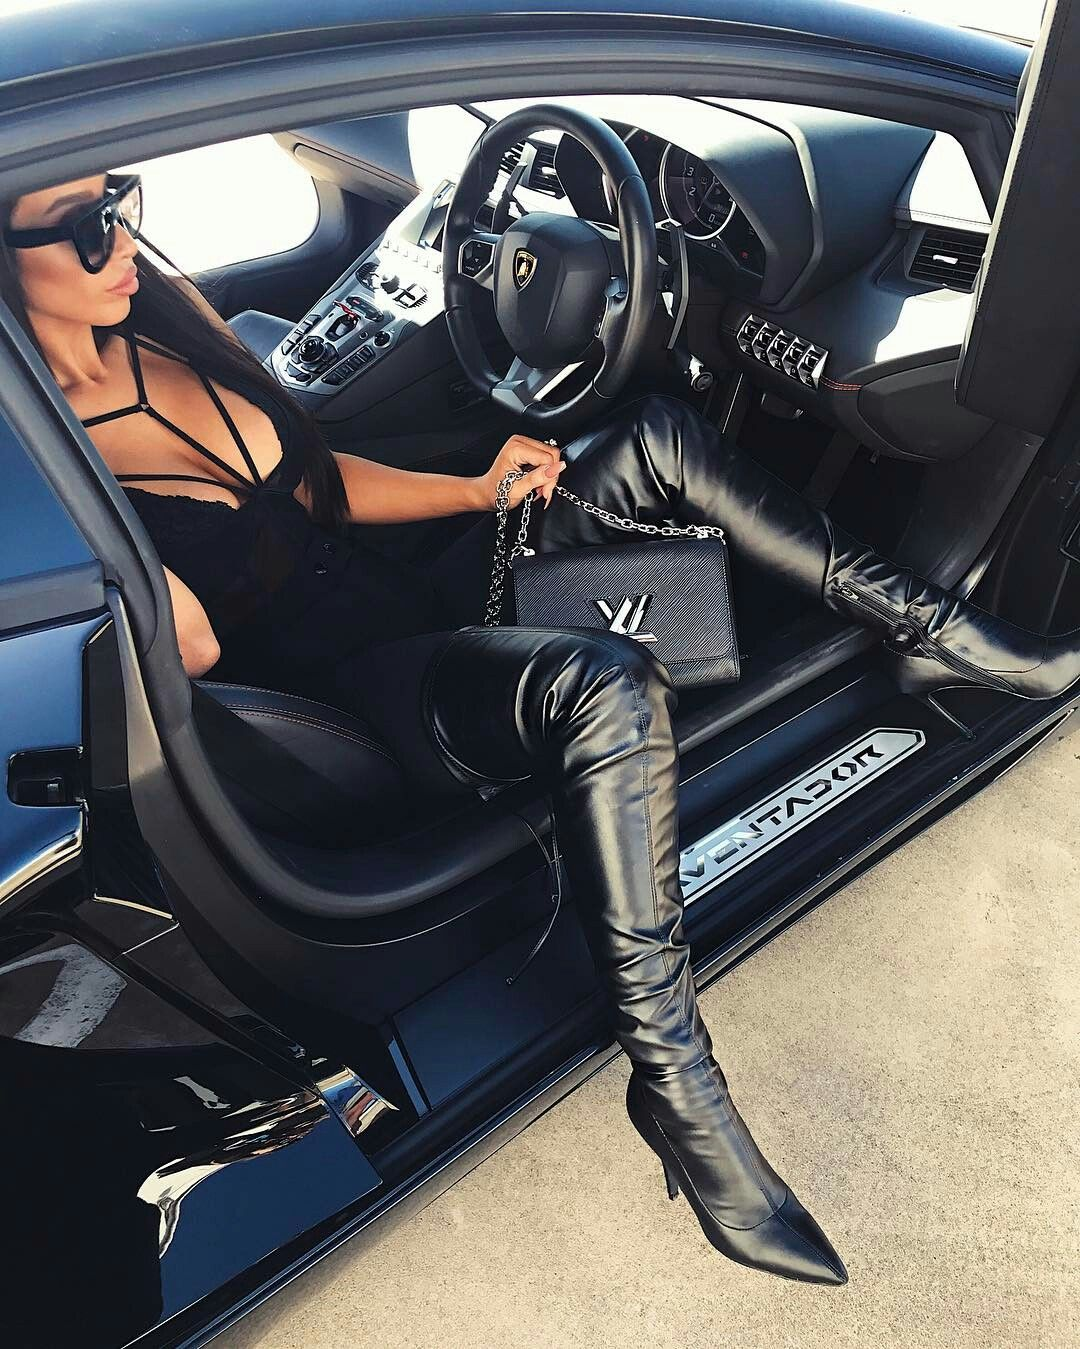 Pin By Xiomara Miranda On Car Poses In 2020 Boots Leather Boots Leather